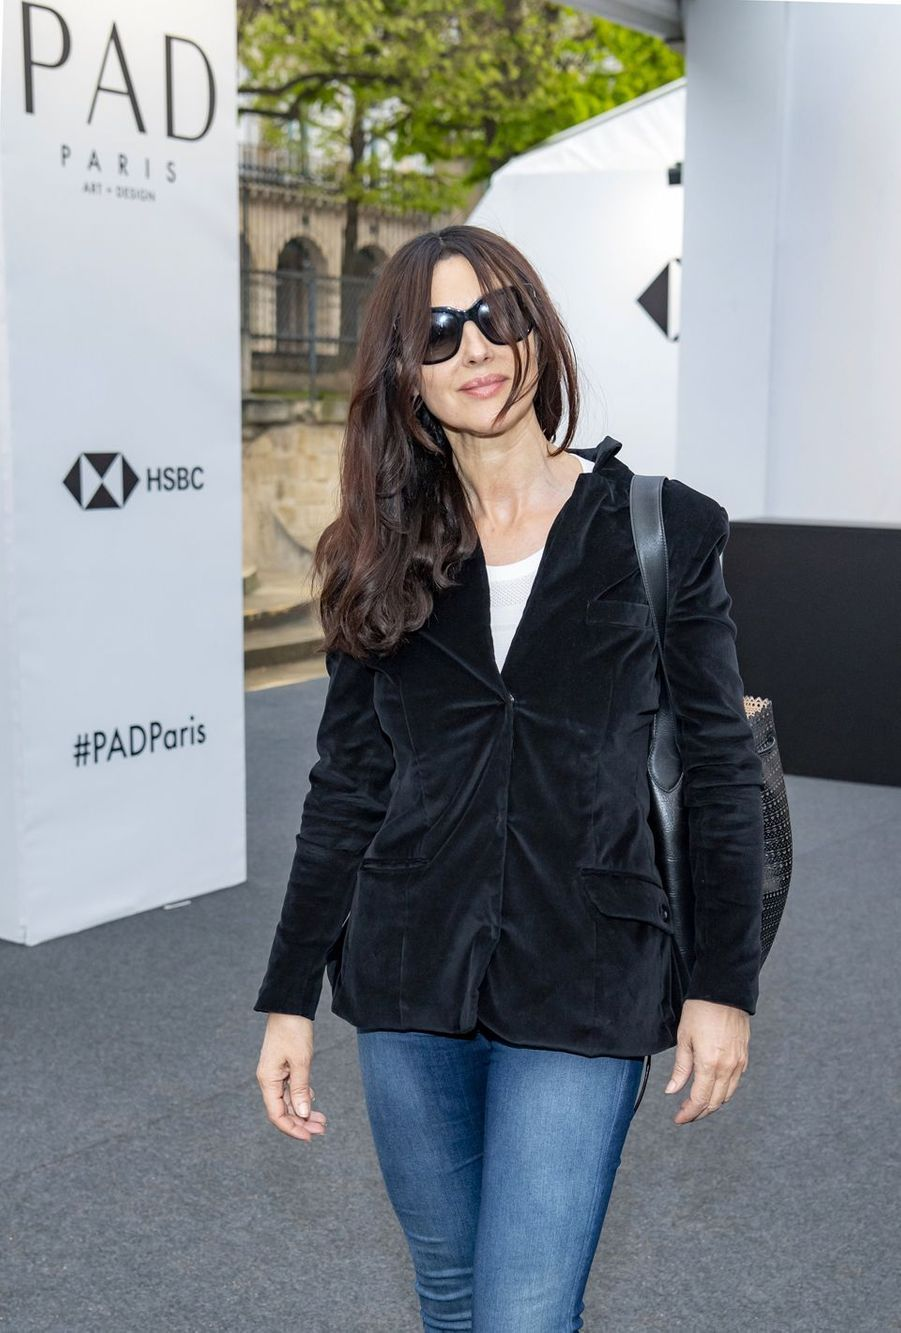 Monica Bellucci lors du salon PAD (Paris Art Design) à Paris le 2 avril 2019.